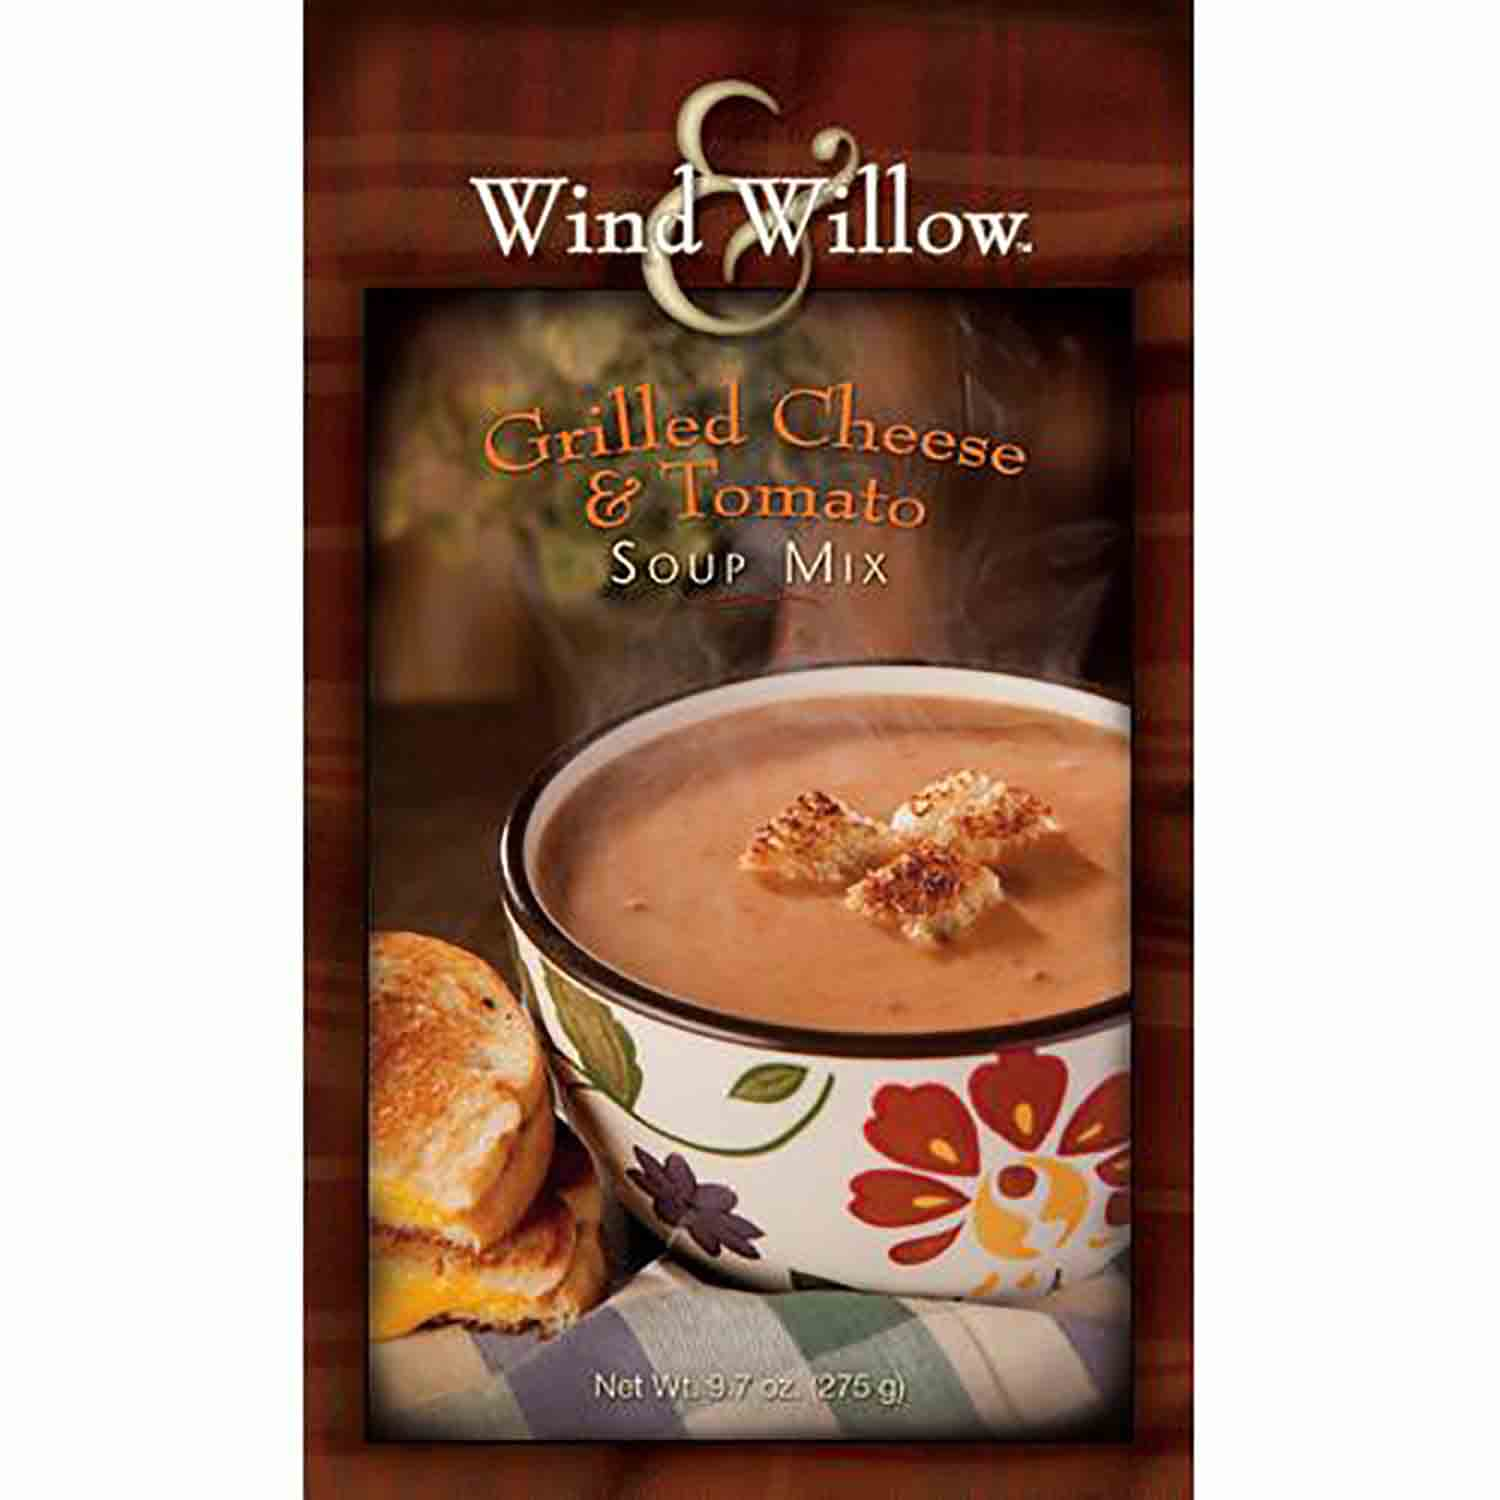 Grilled Cheese & Tomato Wind & Willow Soup Mix